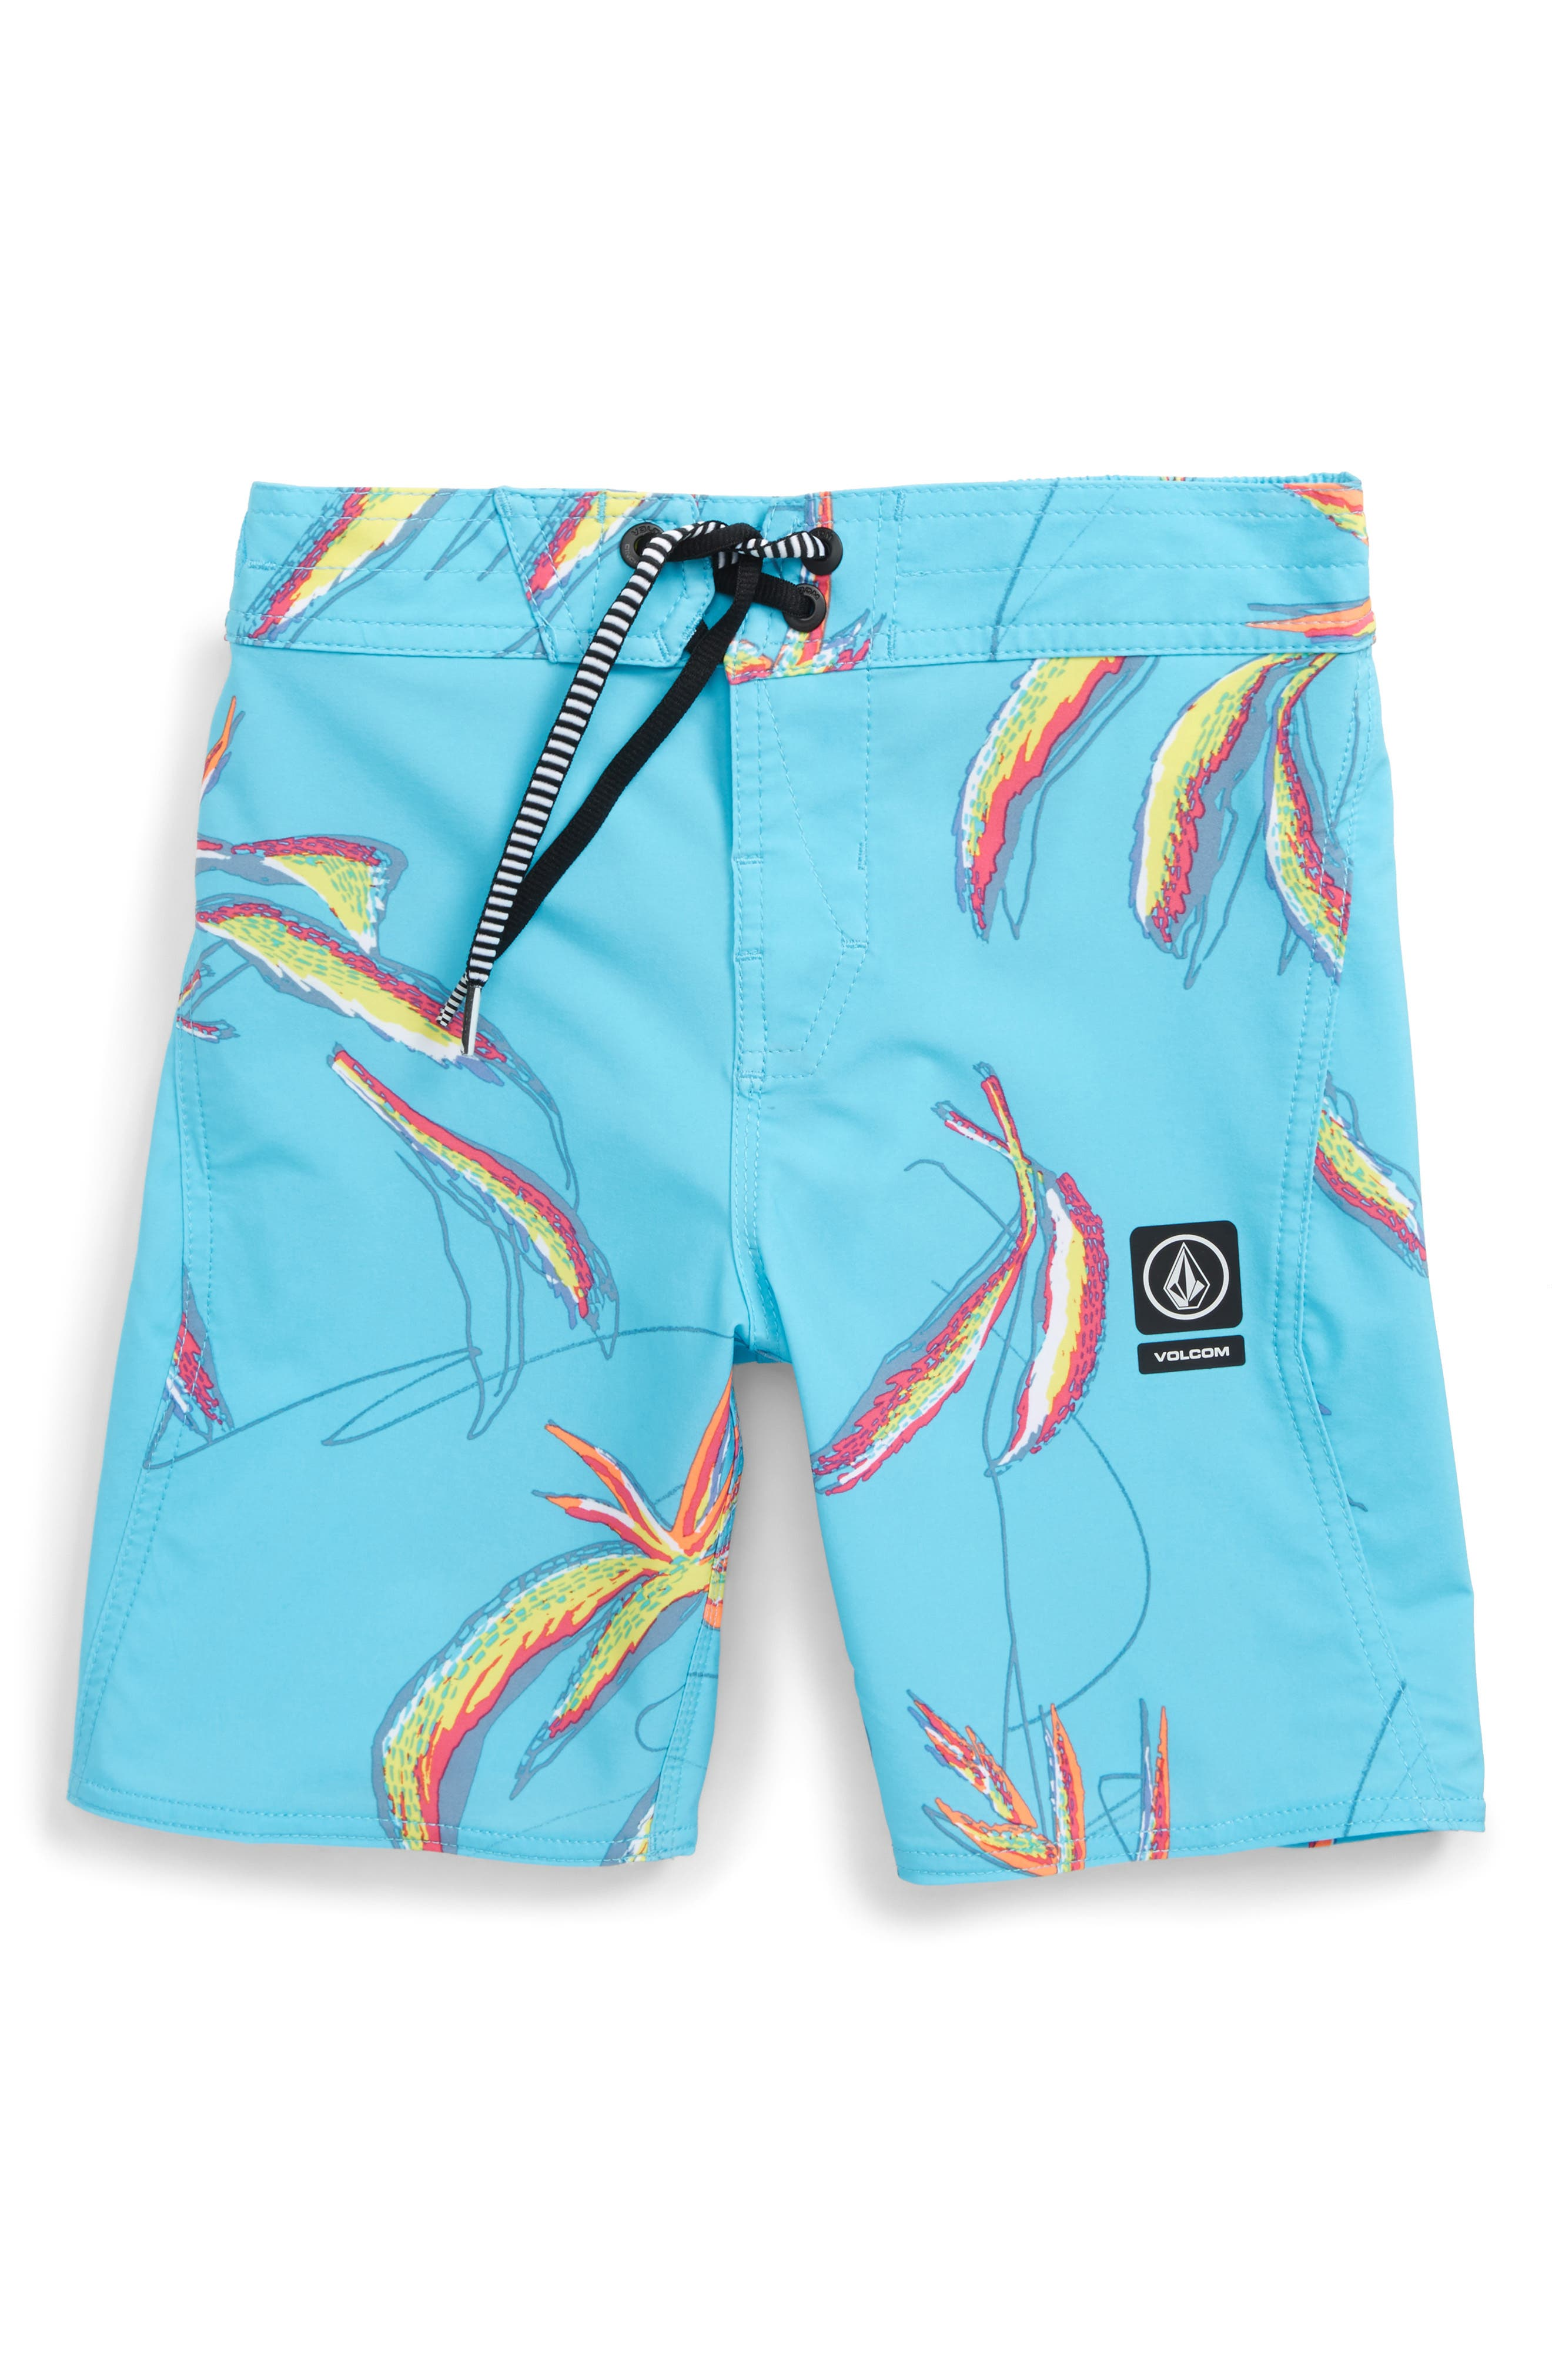 Alternate Image 1 Selected - Volcom Tropical Print Board Shorts (Big Boys)